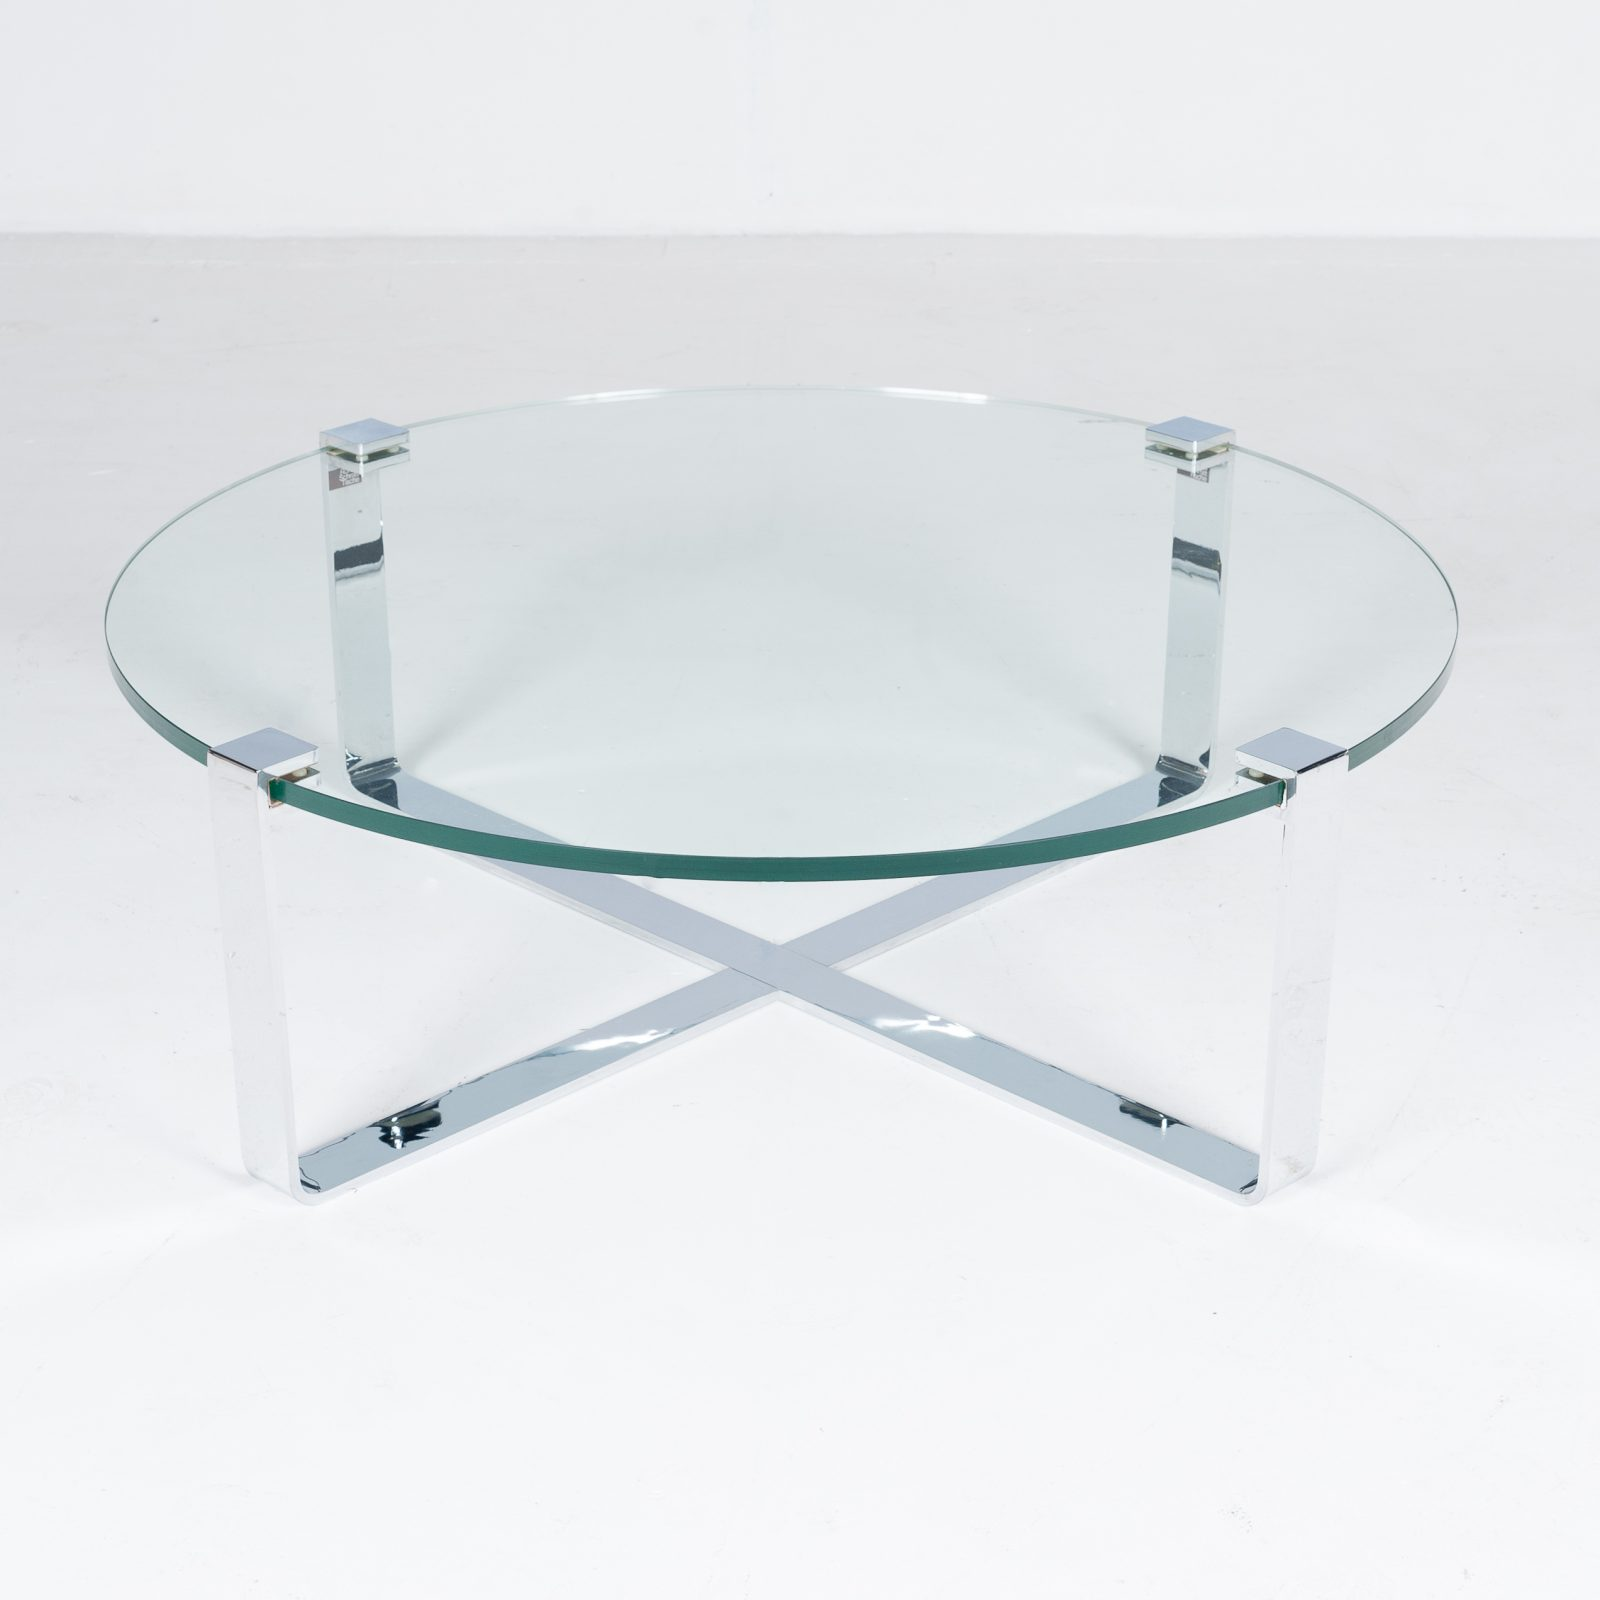 Round Coffee Table In Glass And Polished Chrome By Friedrich Wilhelm Moller For Ronald Schmitt, 1970s, Germany66